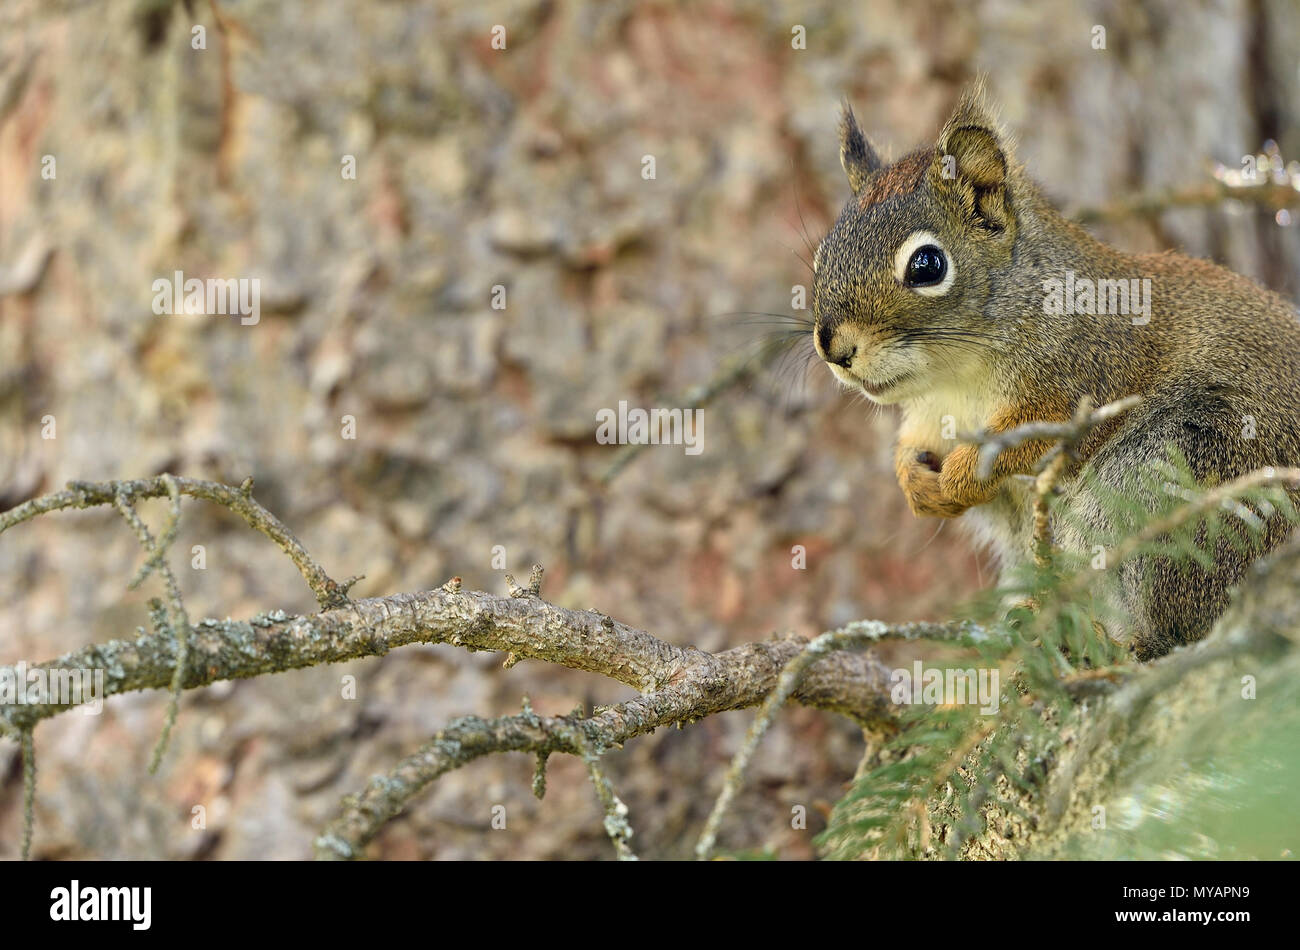 A horizontal view of a young red squirrel  ( Tamiasciurus hudsonicus); sitting on a tree branch at the edge of the image looking forward in rural Albe - Stock Image